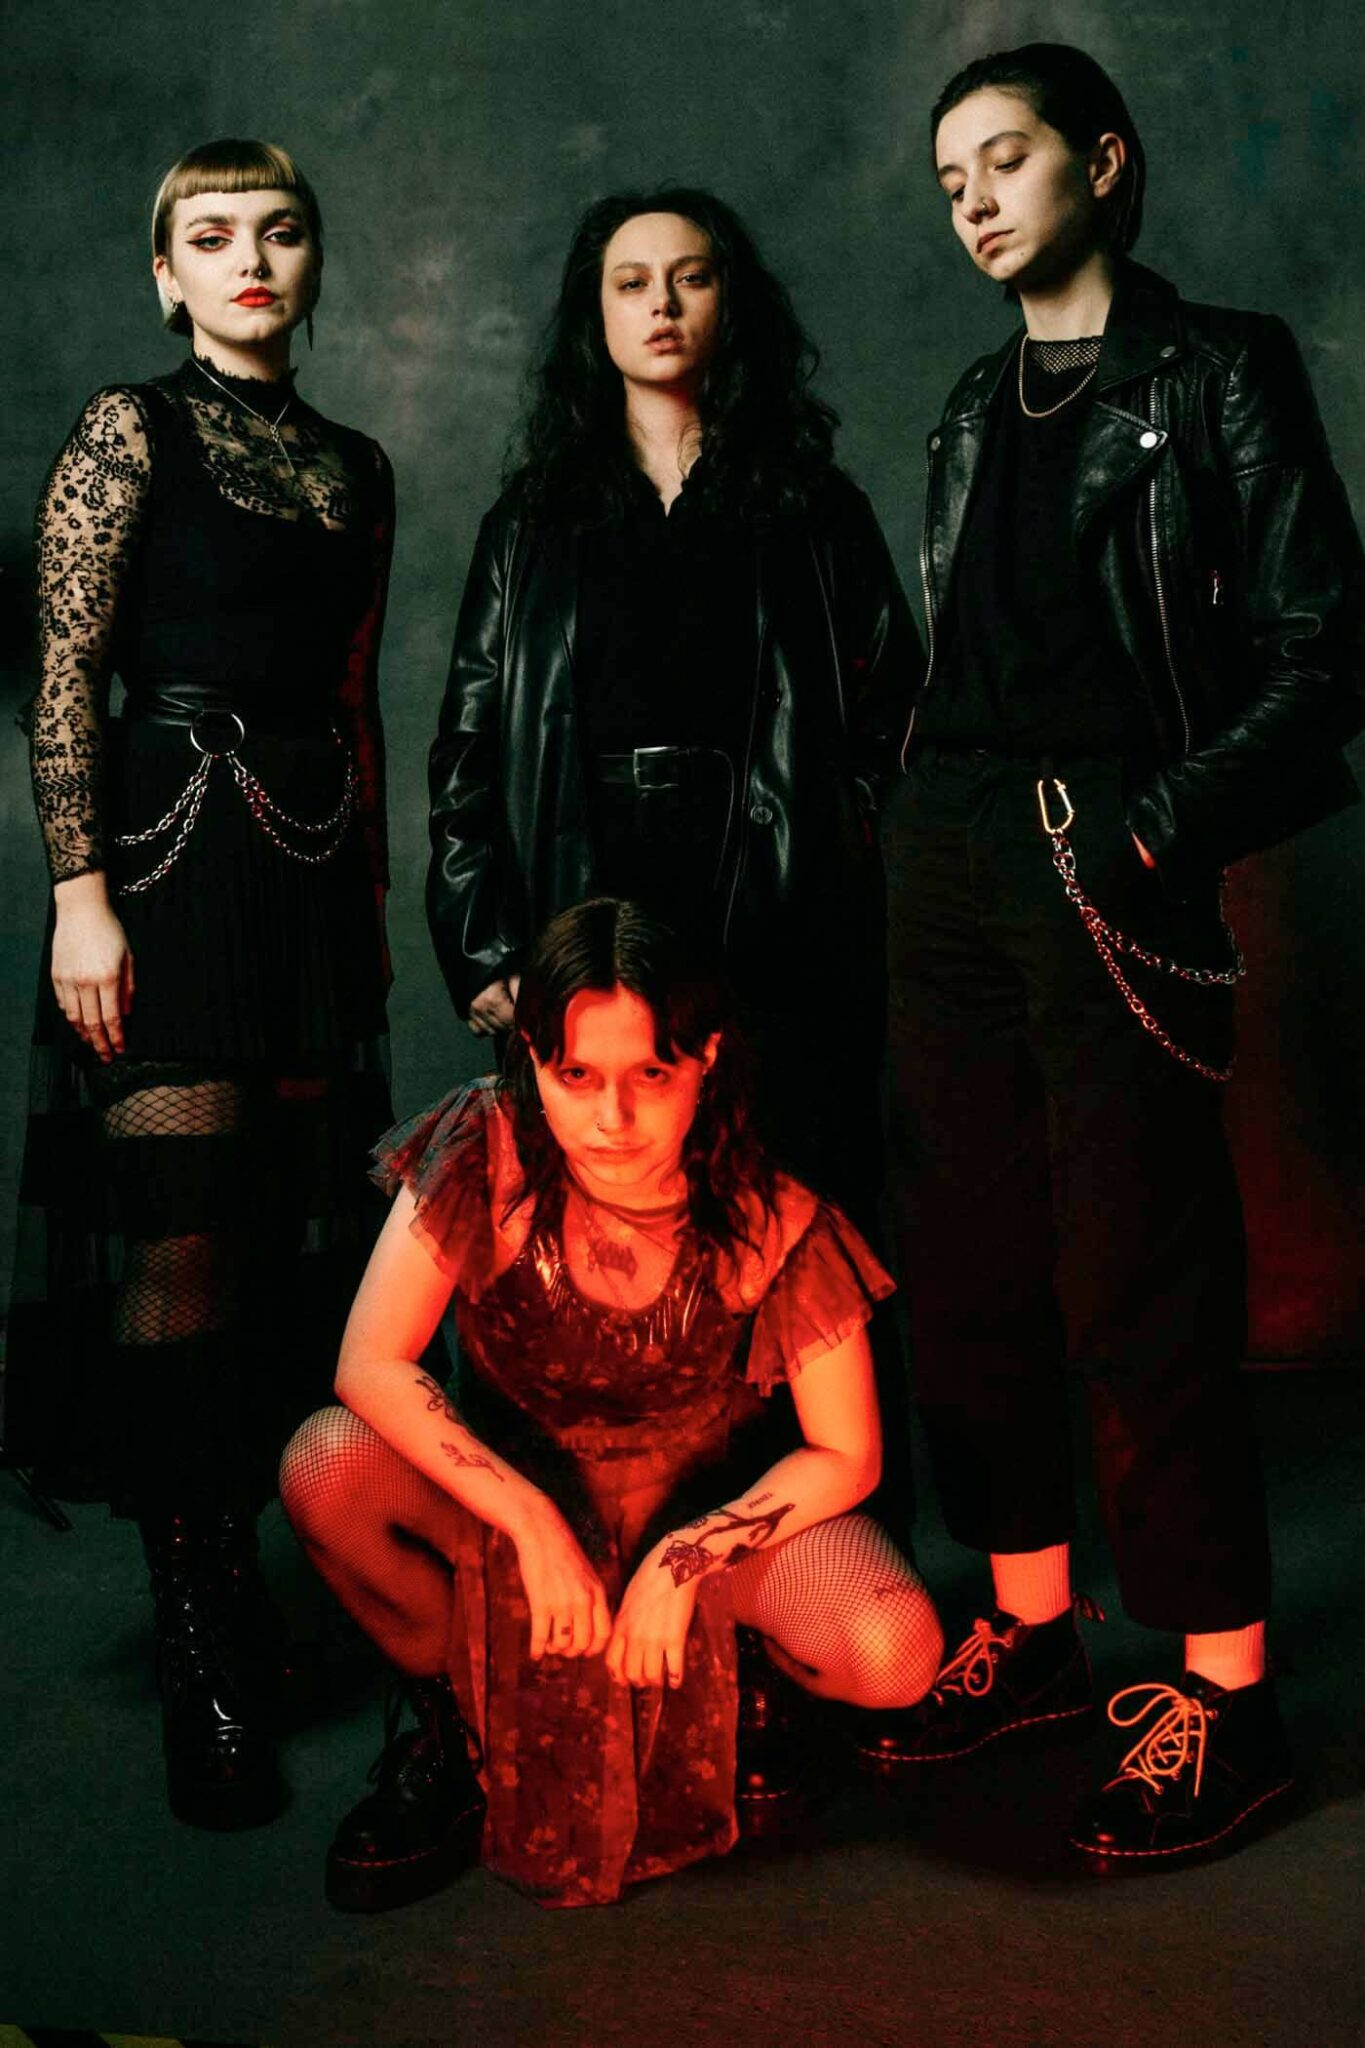 Witch Fever band photo. Photo by Debbie Ellis